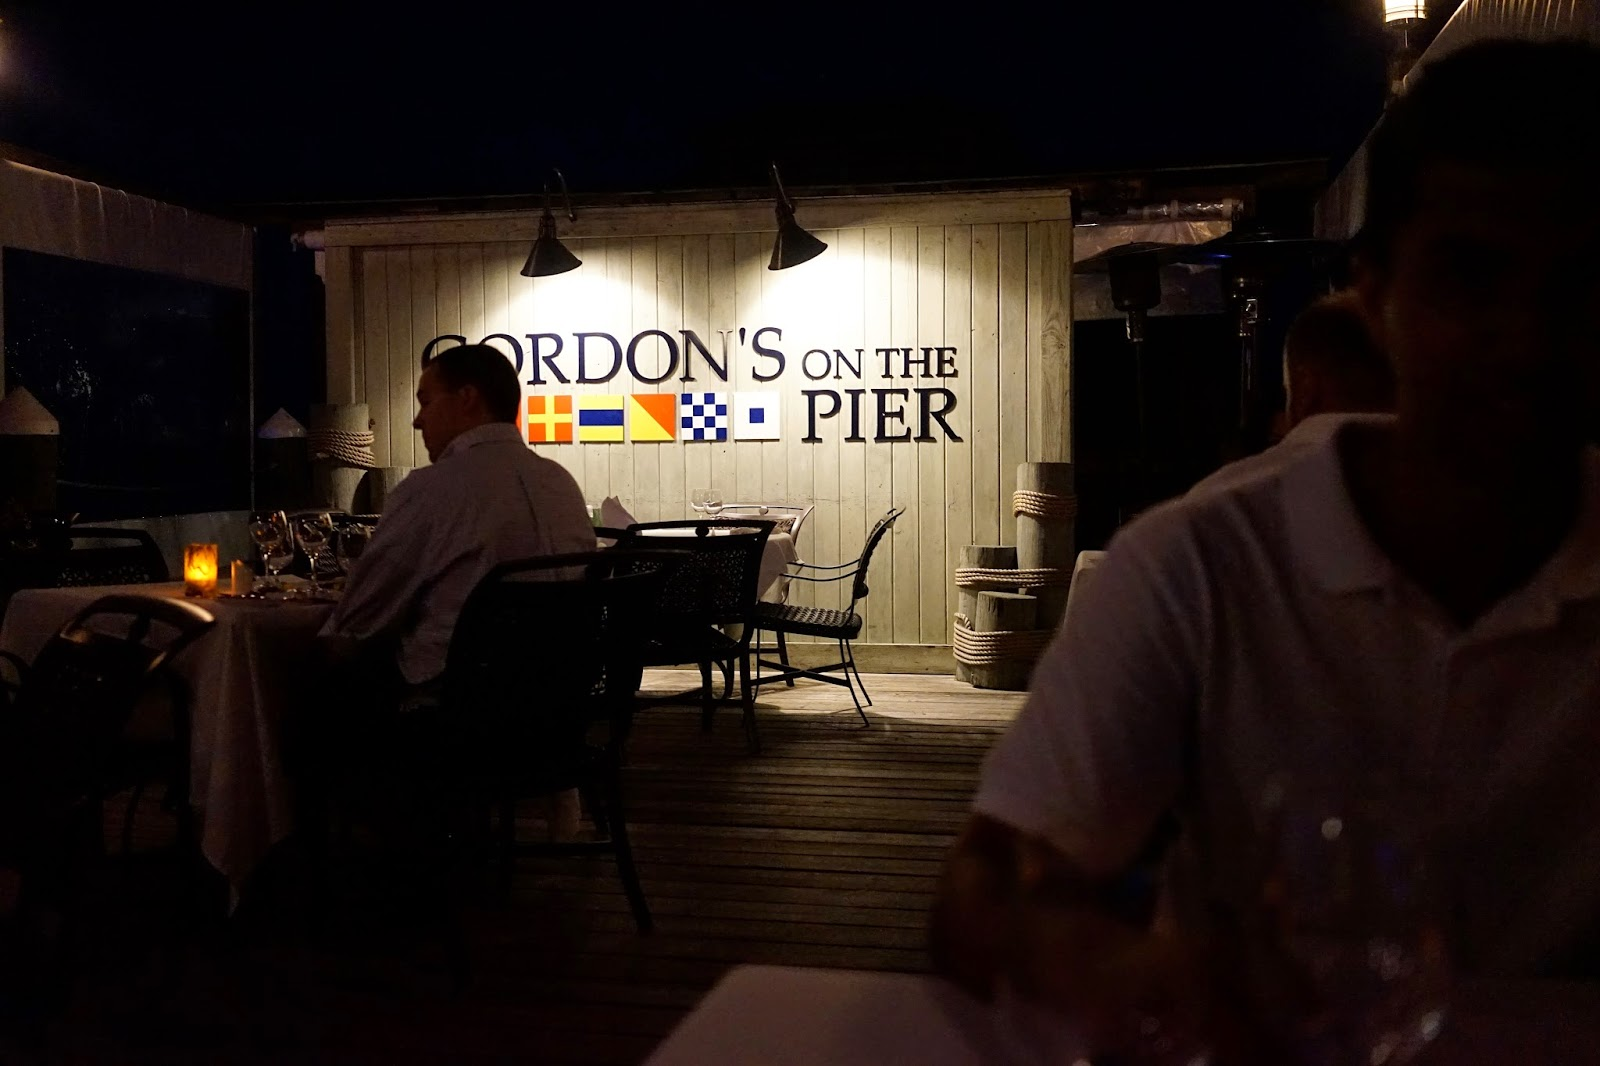 Gordon's on the pier review sandals